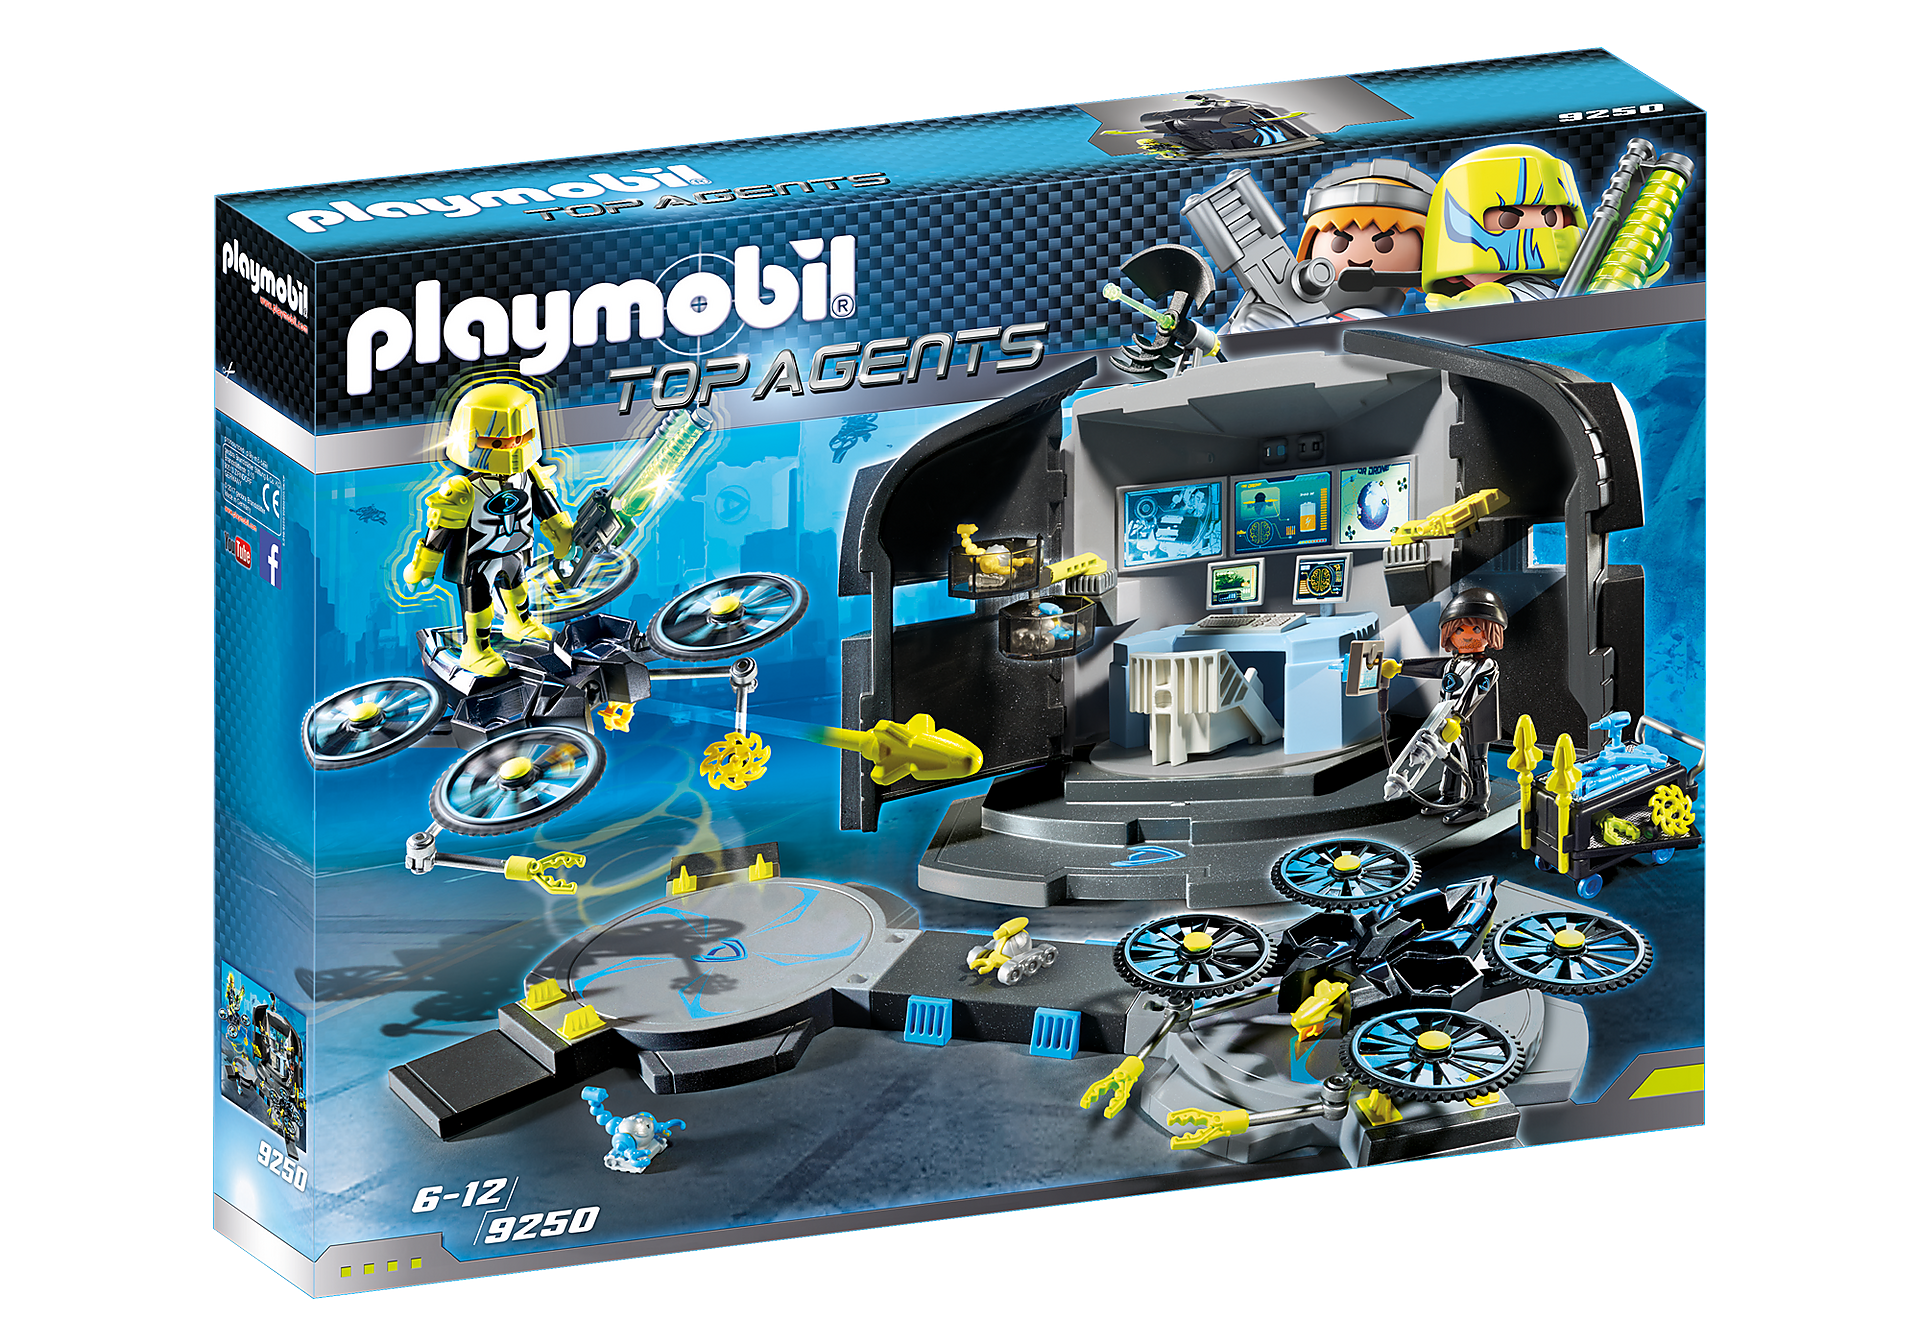 http://media.playmobil.com/i/playmobil/9250_product_box_front/Dr. Drone's Command Center